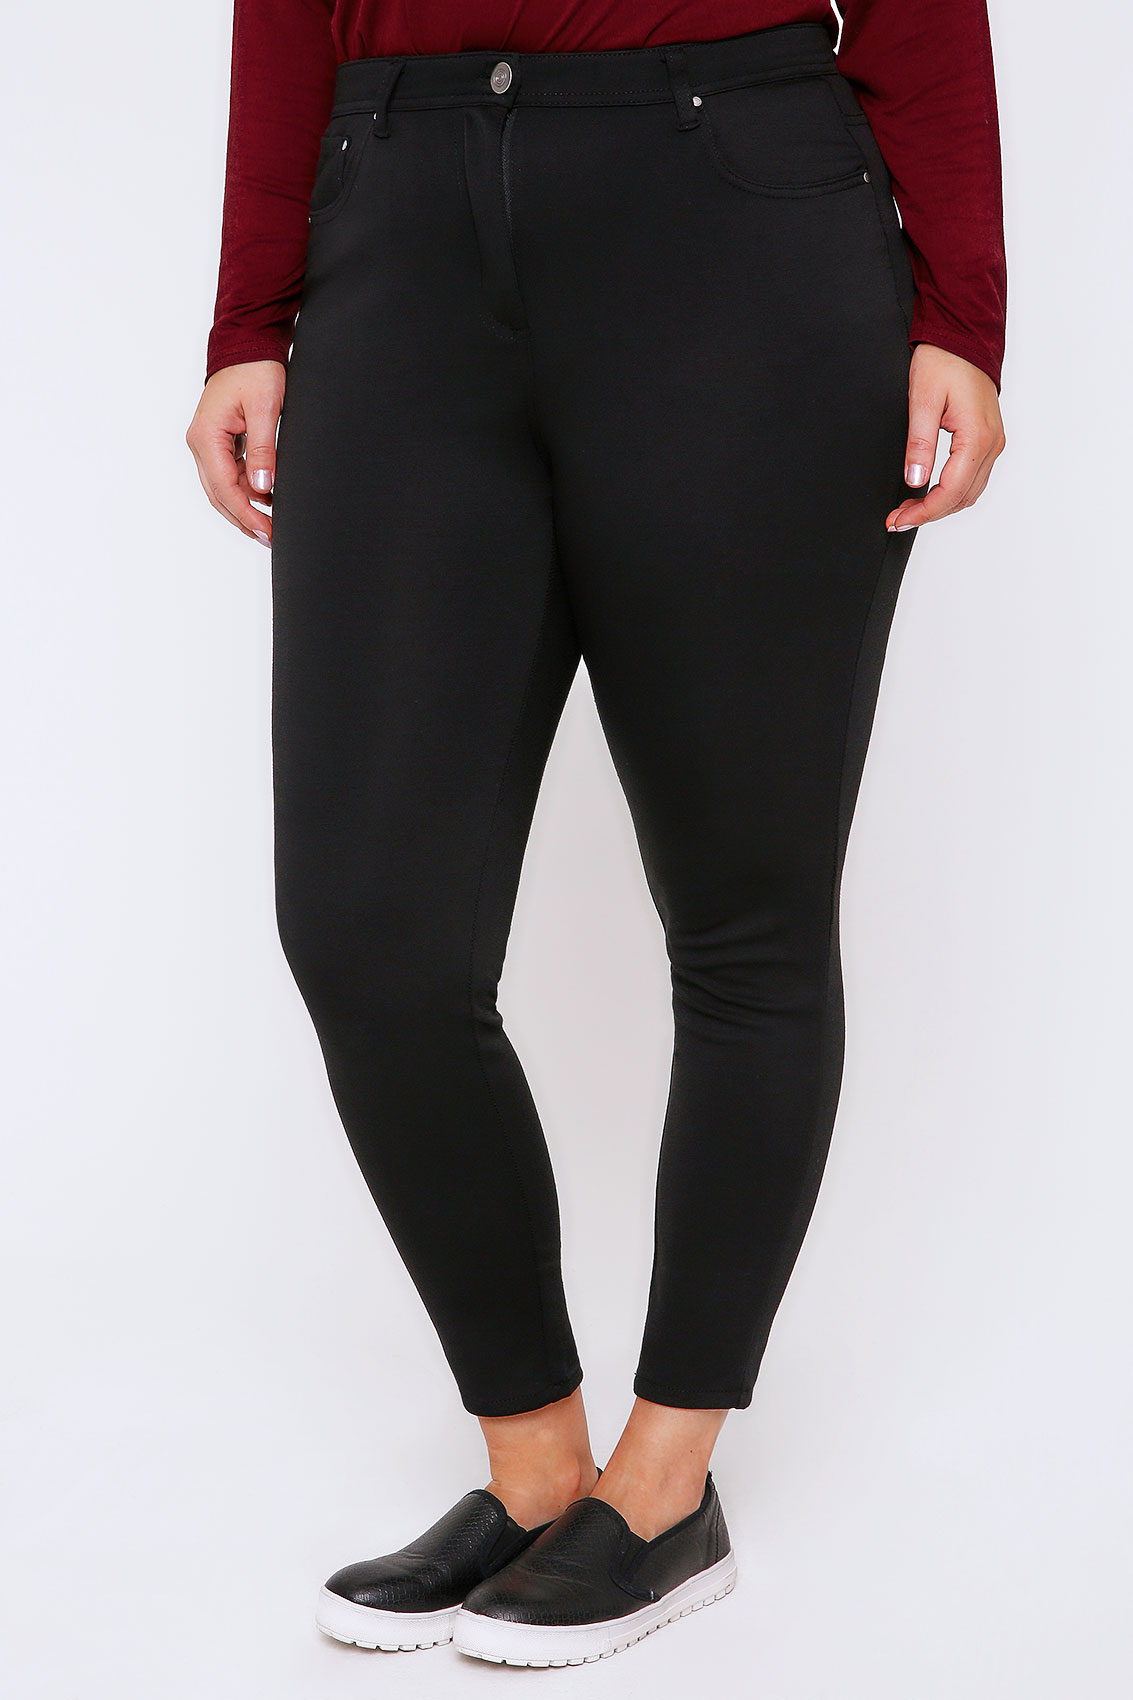 Find great deals on eBay for jeggings with pockets. Shop with confidence.